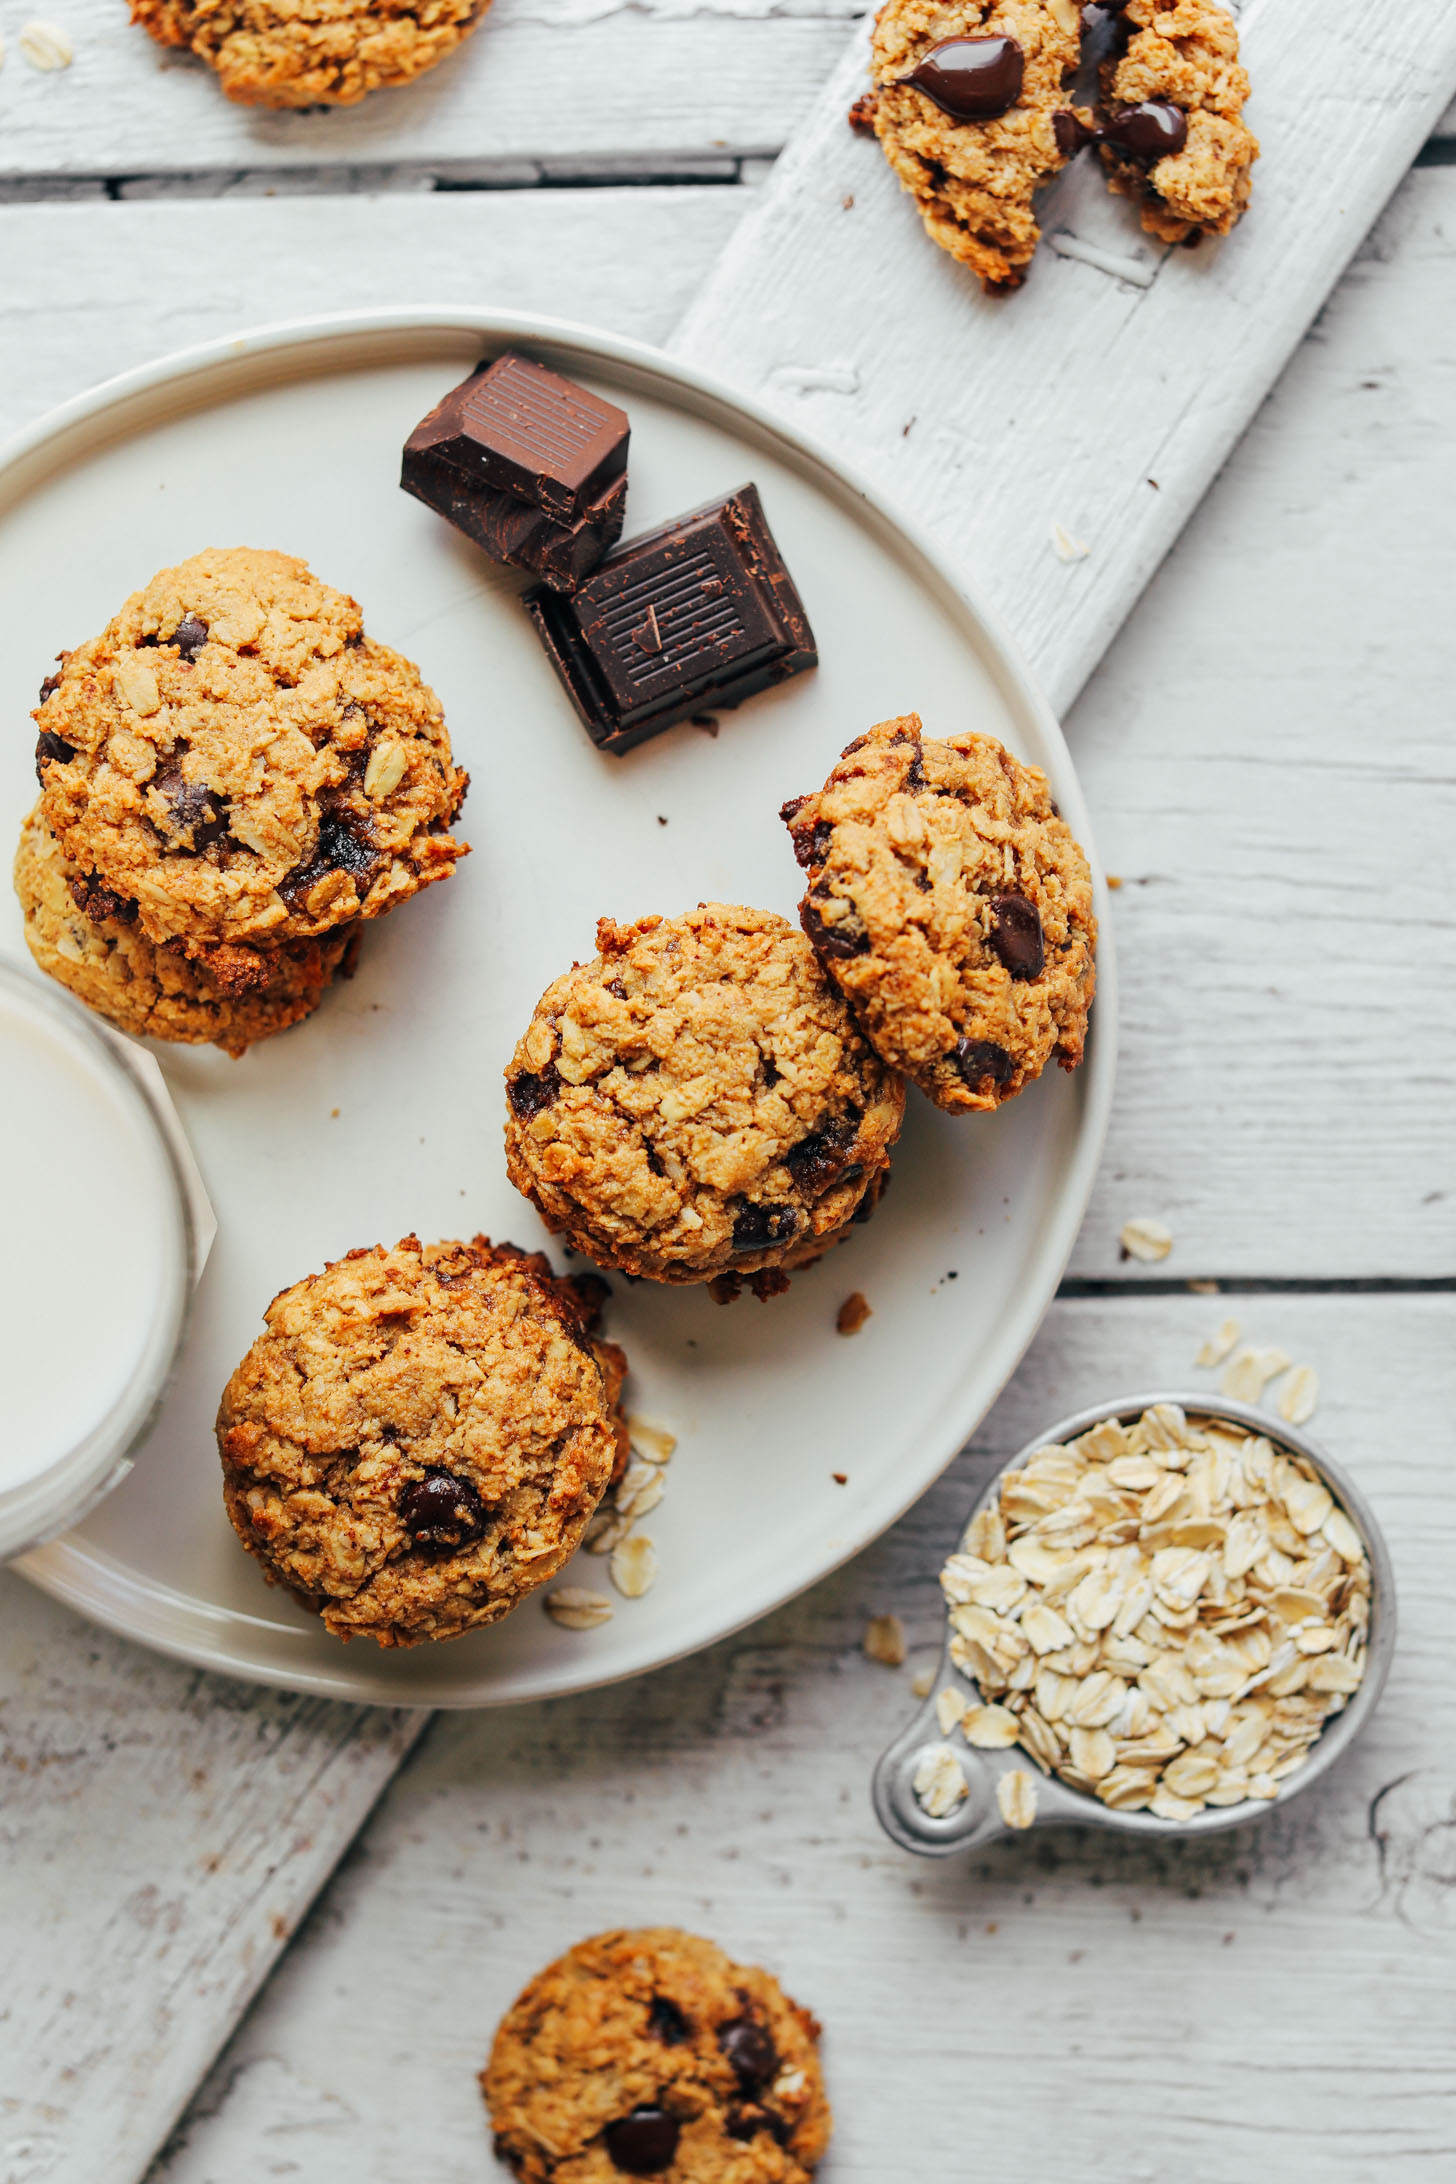 Chocolate Oatmeal Cookies Healthy  Gluten Free Oatmeal Chocolate Chip Cookies